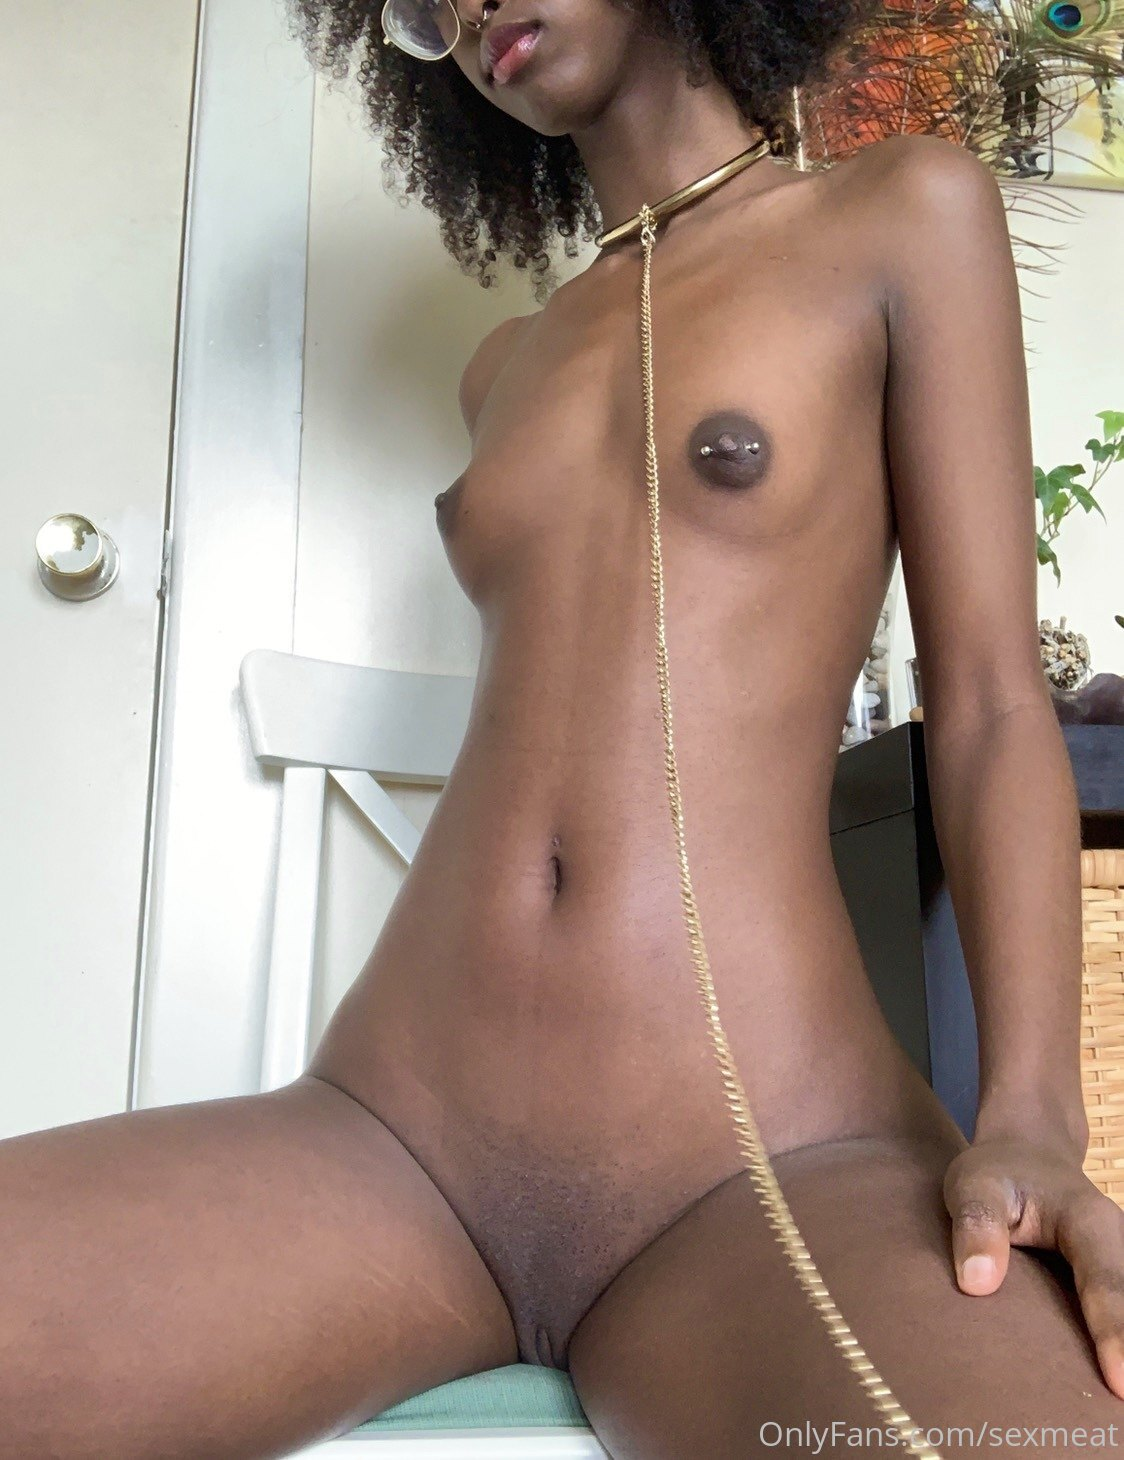 Sexmeat Onlyfans Nude Gallery Leaked